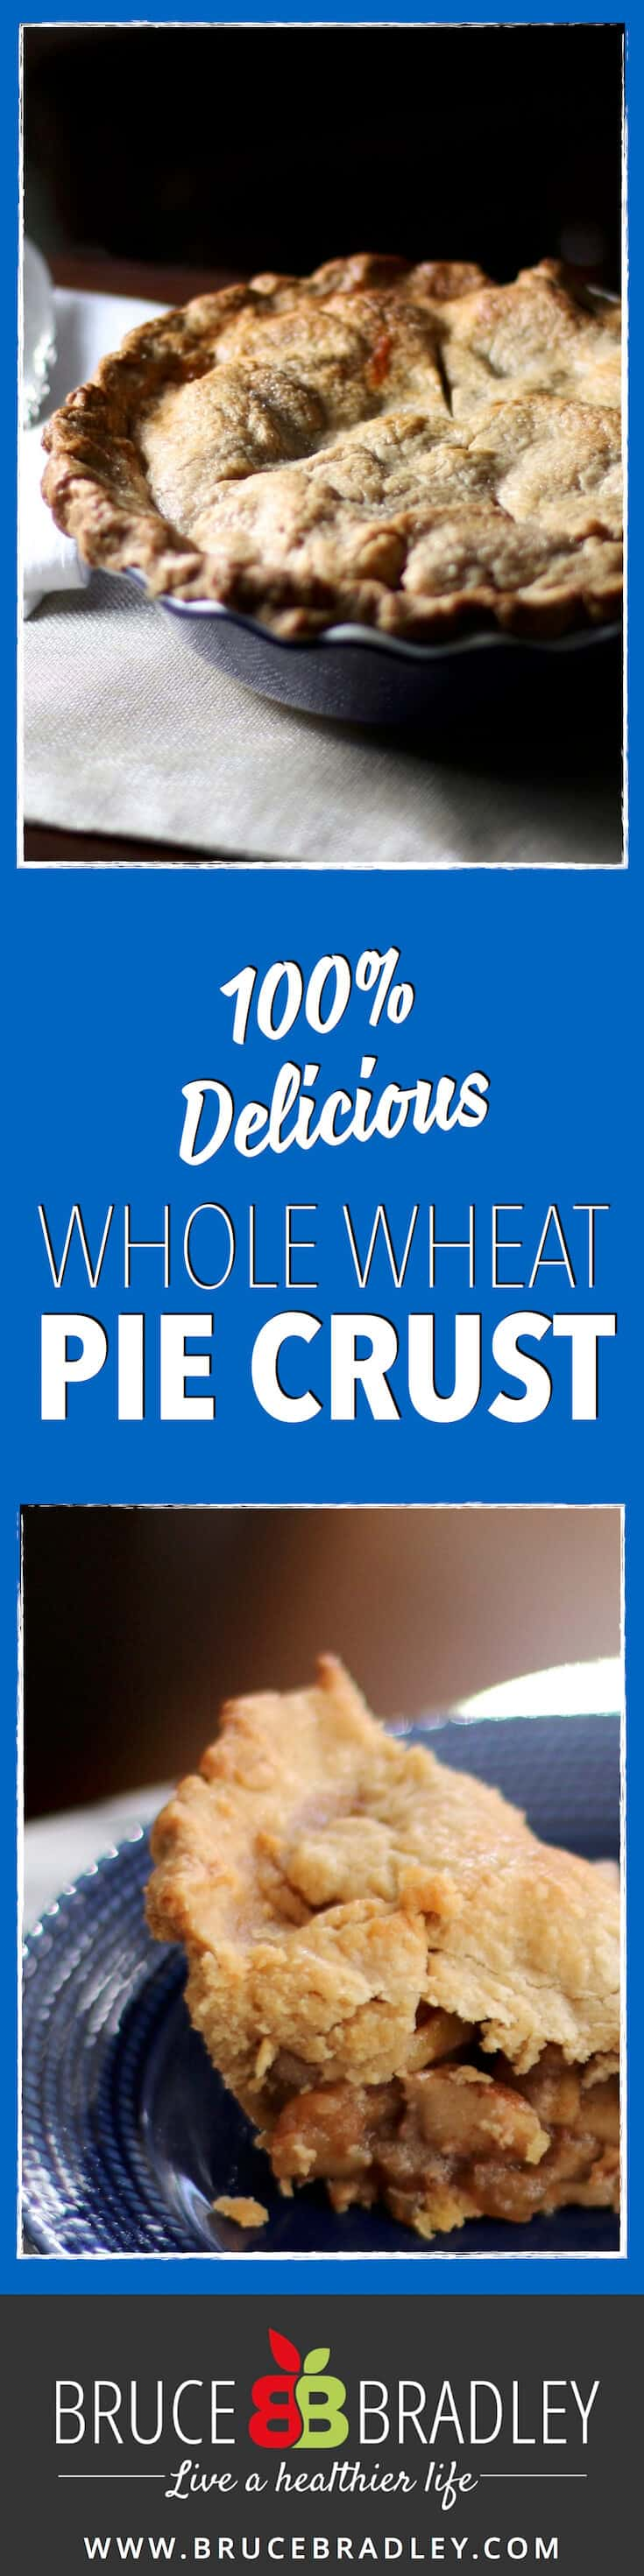 What's in your store-bought pie crust? It's pretty scary. Ditch the trans fats, preservatives, and added colors, and try my 100% delicious whole wheat pie crust instead! It's simply amazing and easy to make ahead of the big holiday rush!